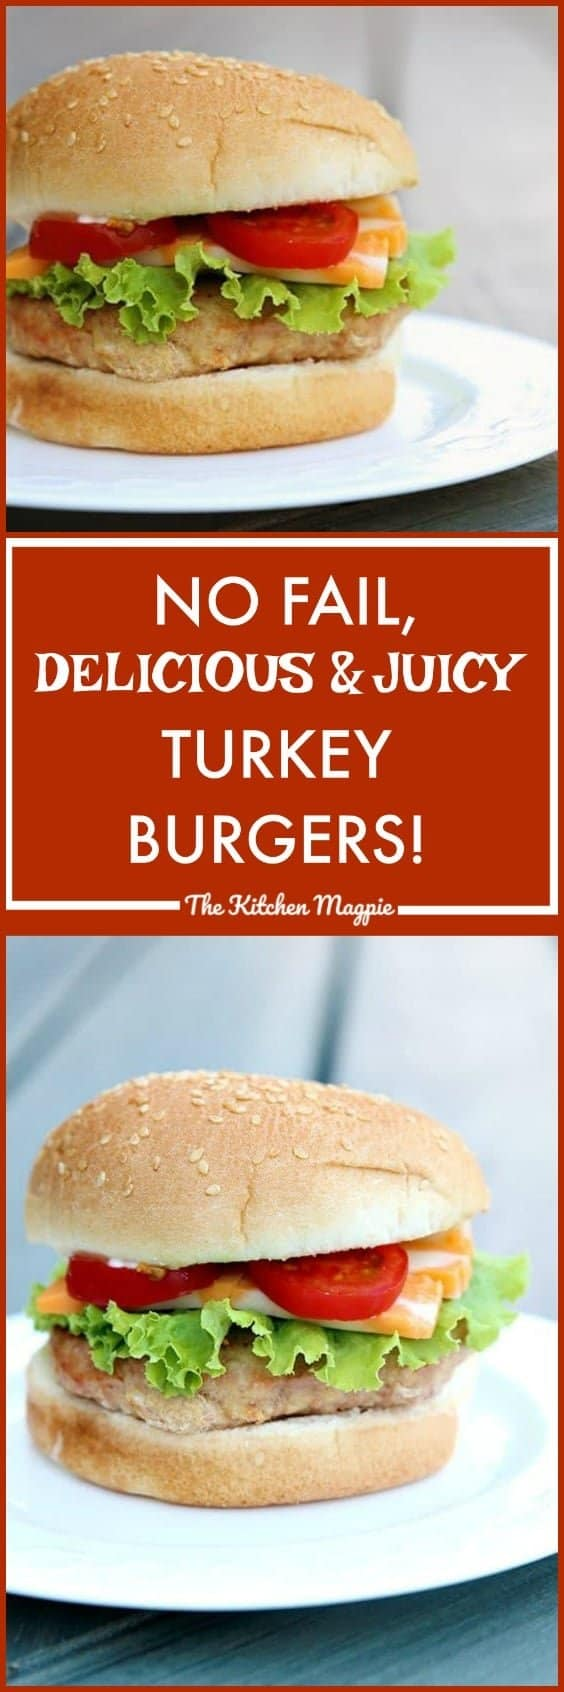 No Fail, Seriously Delicious & Juicy Turkey Burgers! I show you the tricks and secrets to making a GREAT turkey burger!